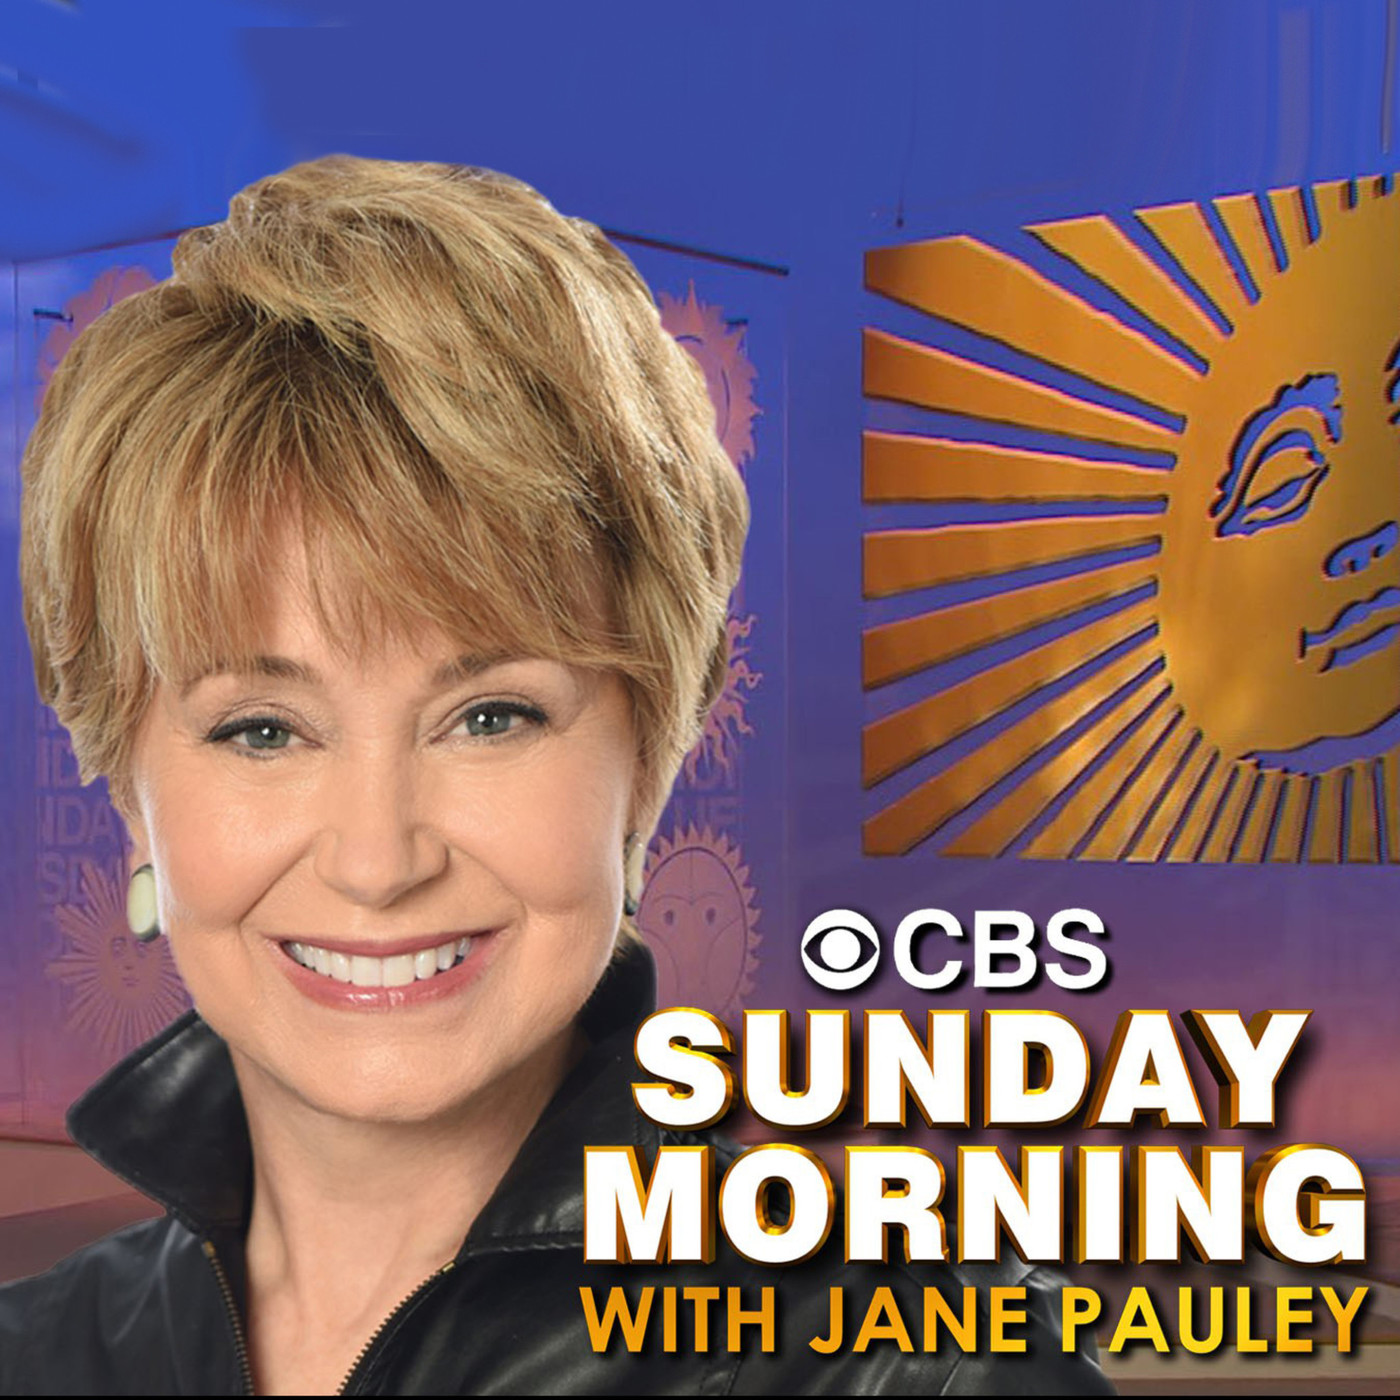 CBS Sunday Morning with Jane Pauley podcast show image